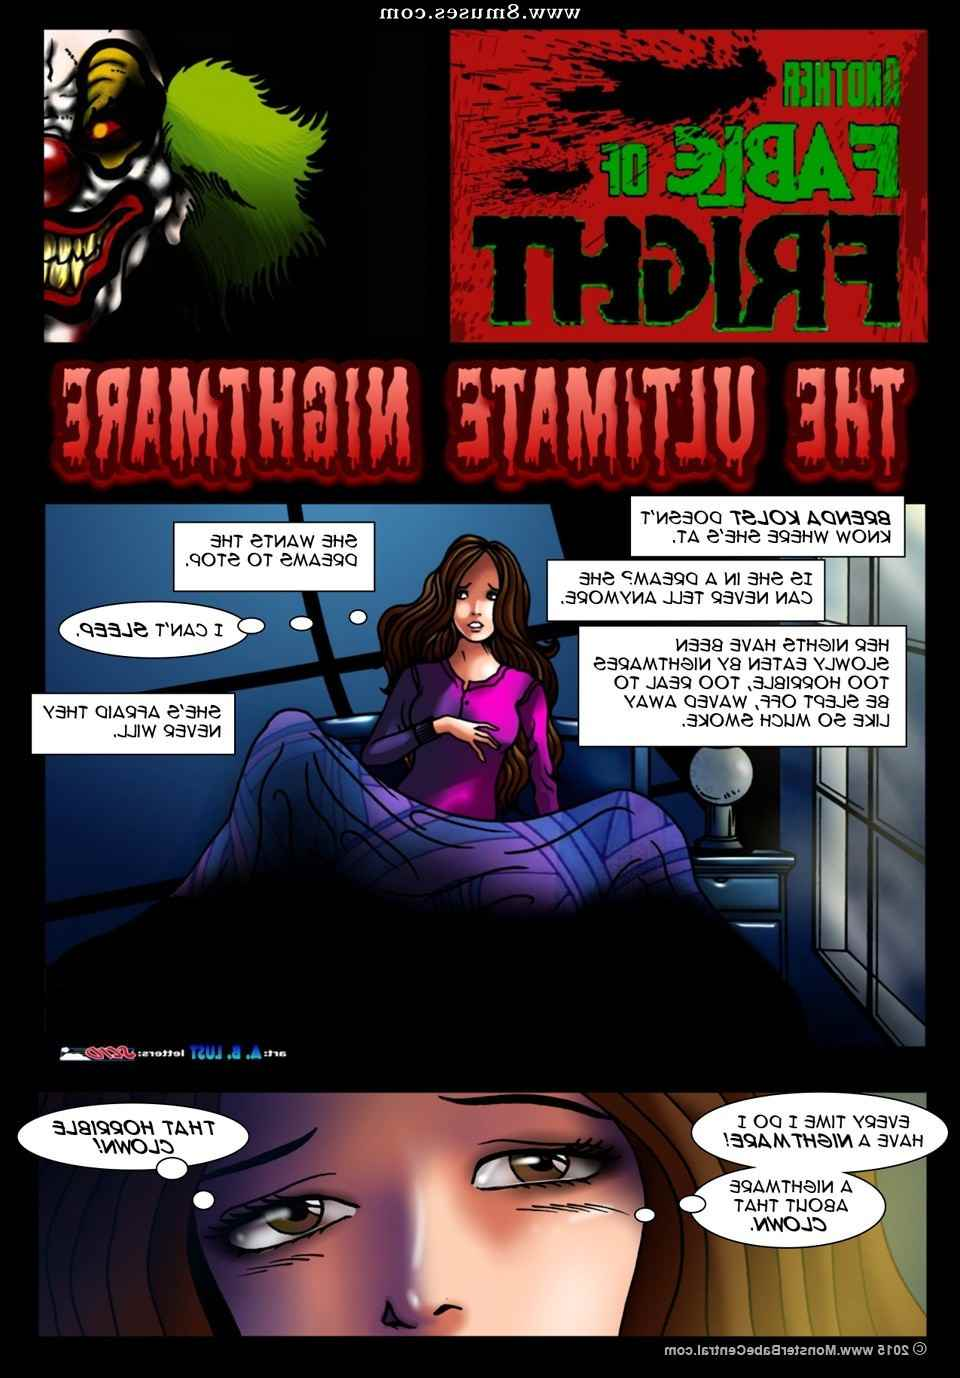 Central-Comics/Horror-Babe-Central/Fable-of-Fright Fable_of_Fright__8muses_-_Sex_and_Porn_Comics_277.jpg